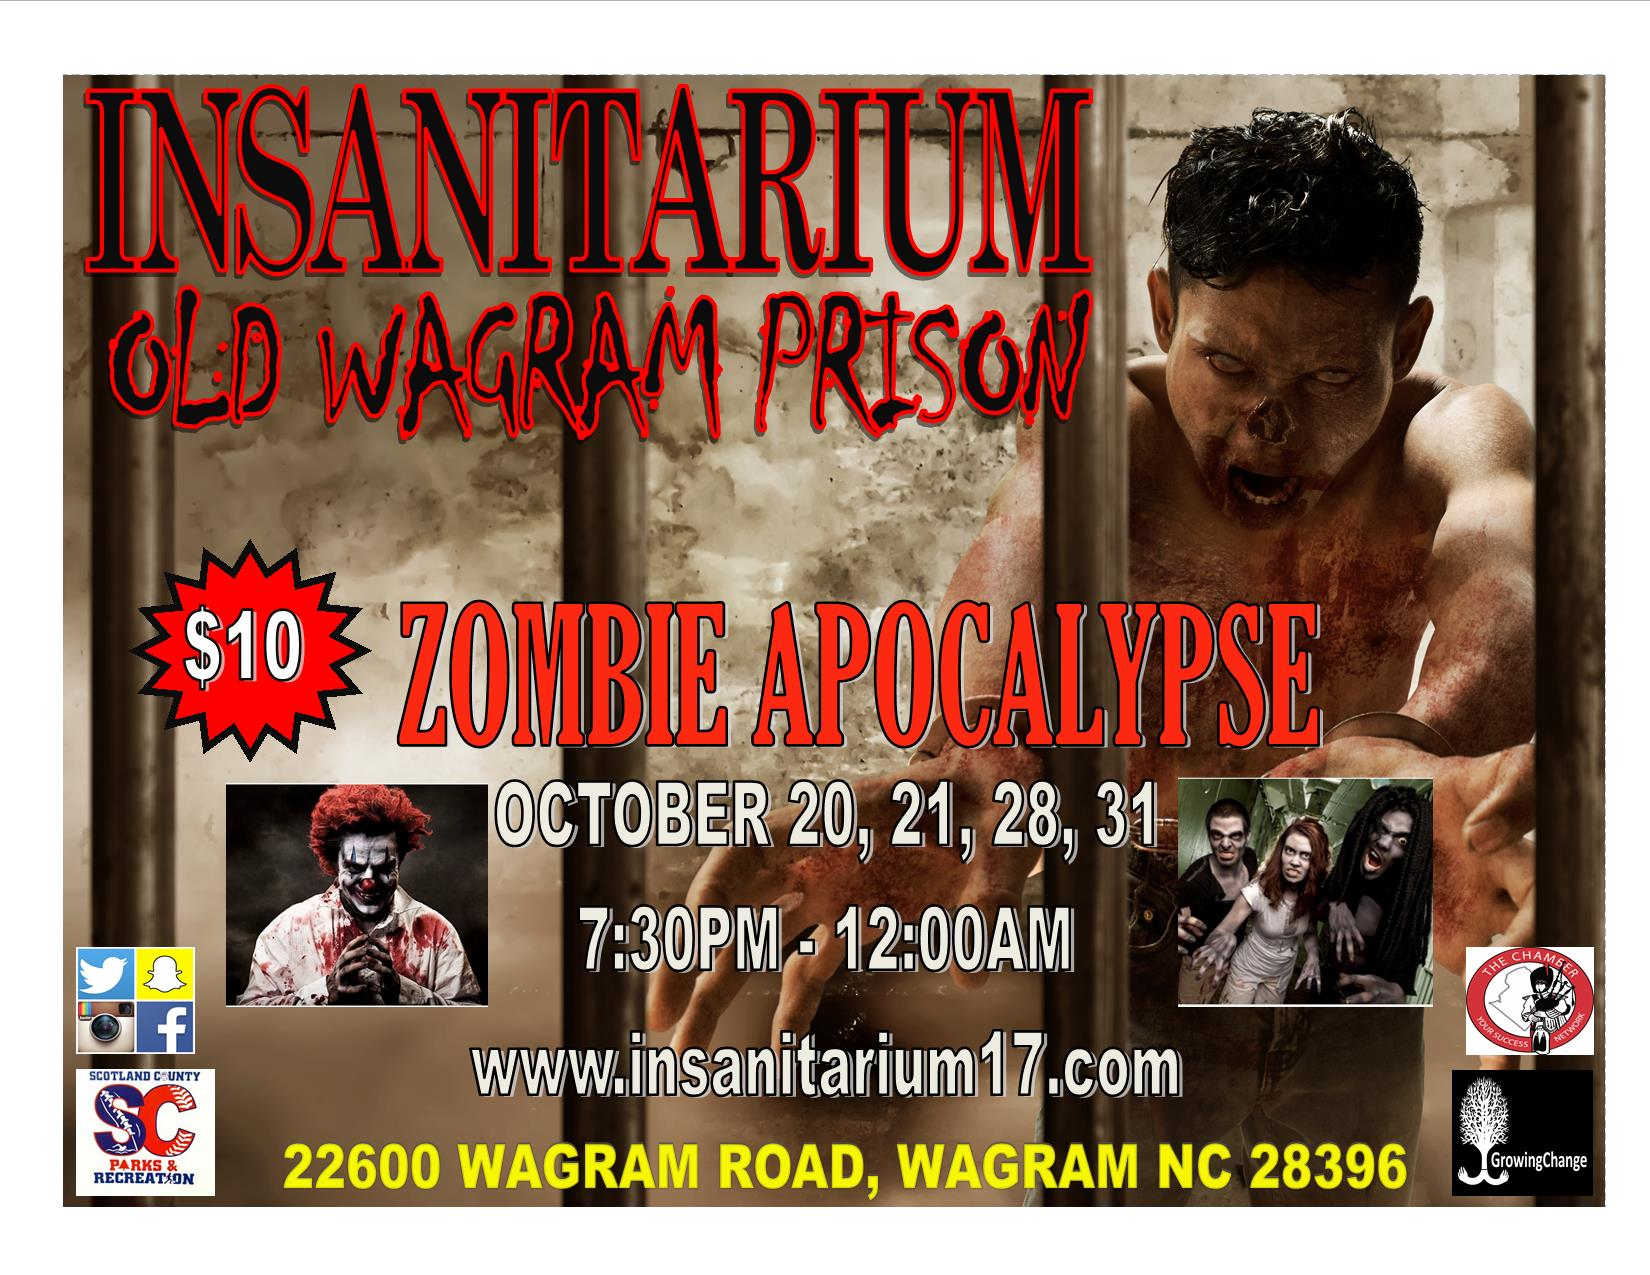 INSANITARIUM FLYER 2